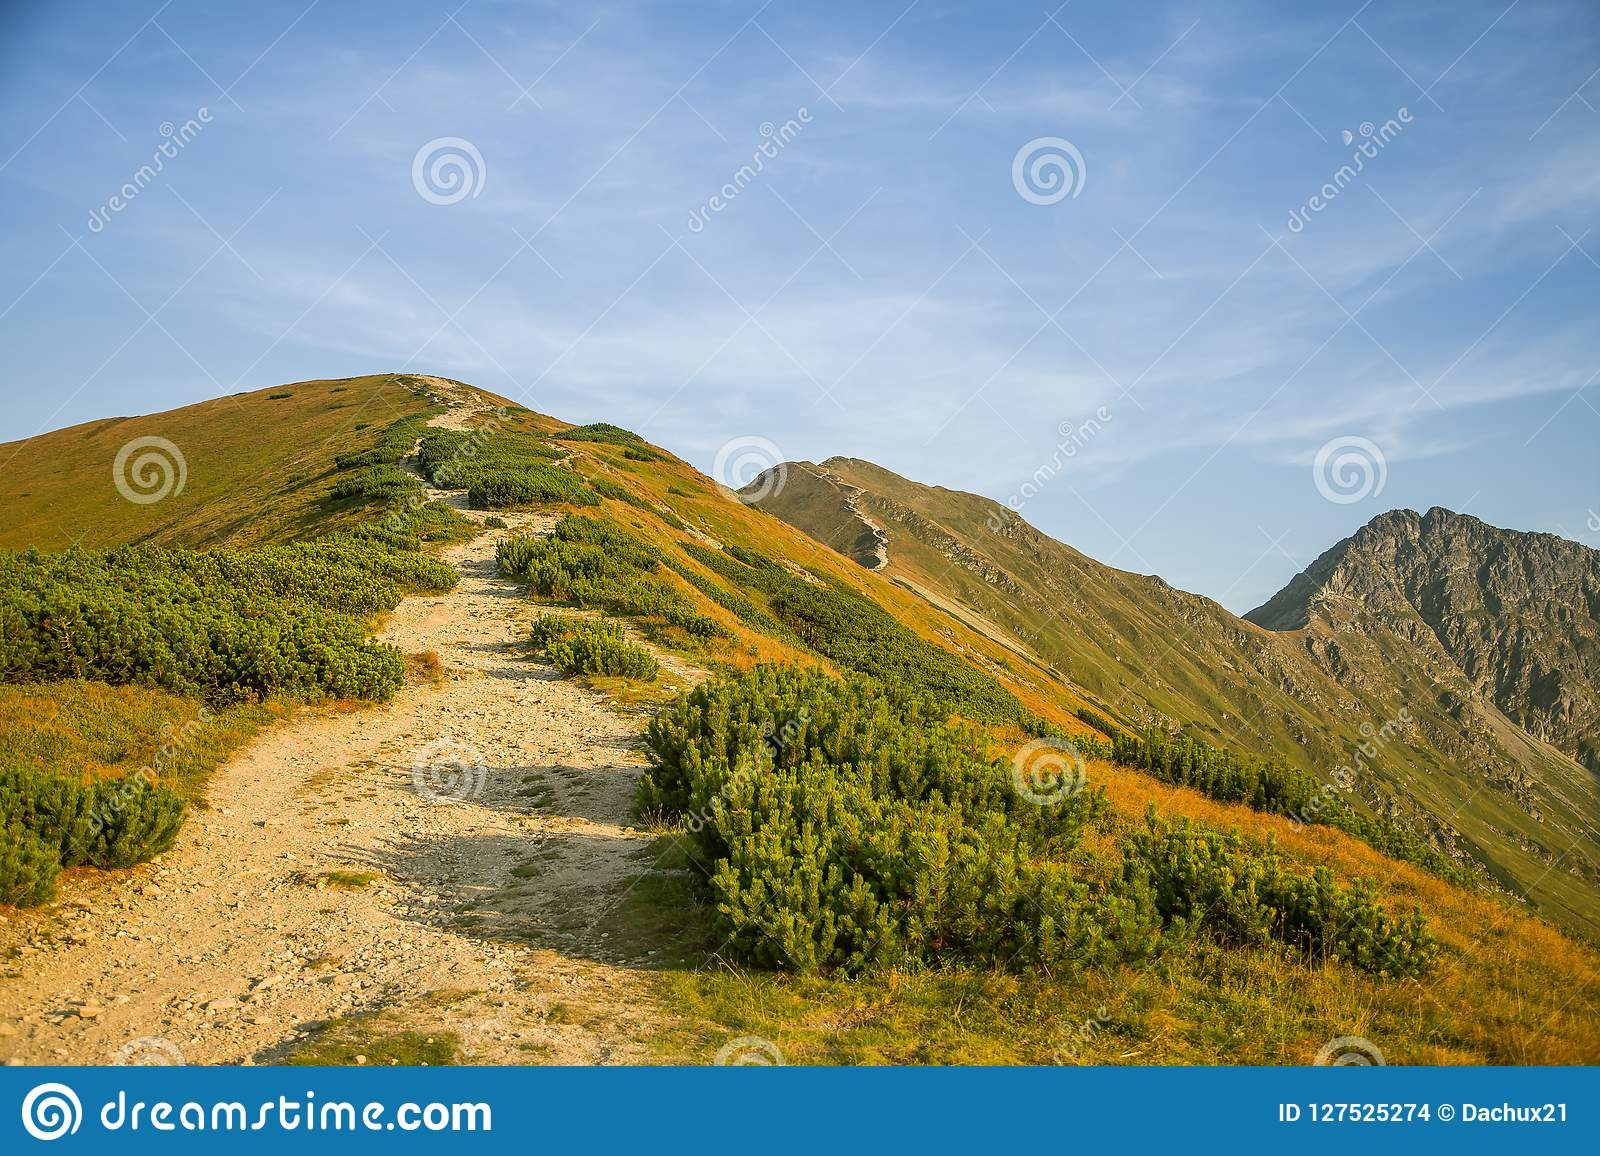 A beautiful hiking trail in the mountains. Mountain landscape in Tatry, Slovakia.